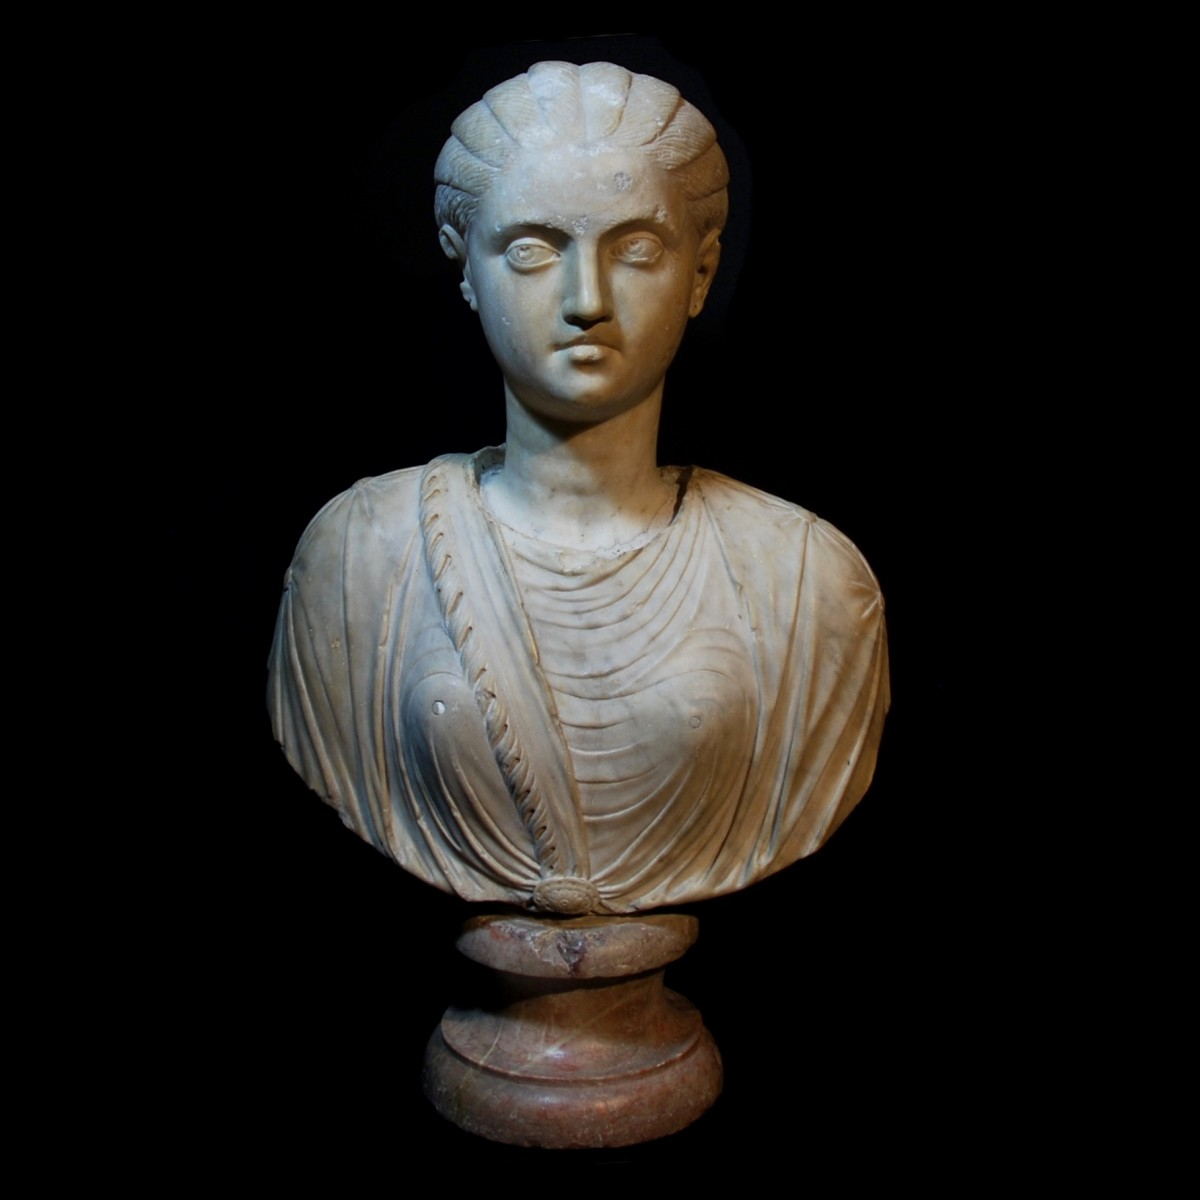 Roman marble bust of a gilr with the features of Fulvia Plautilla